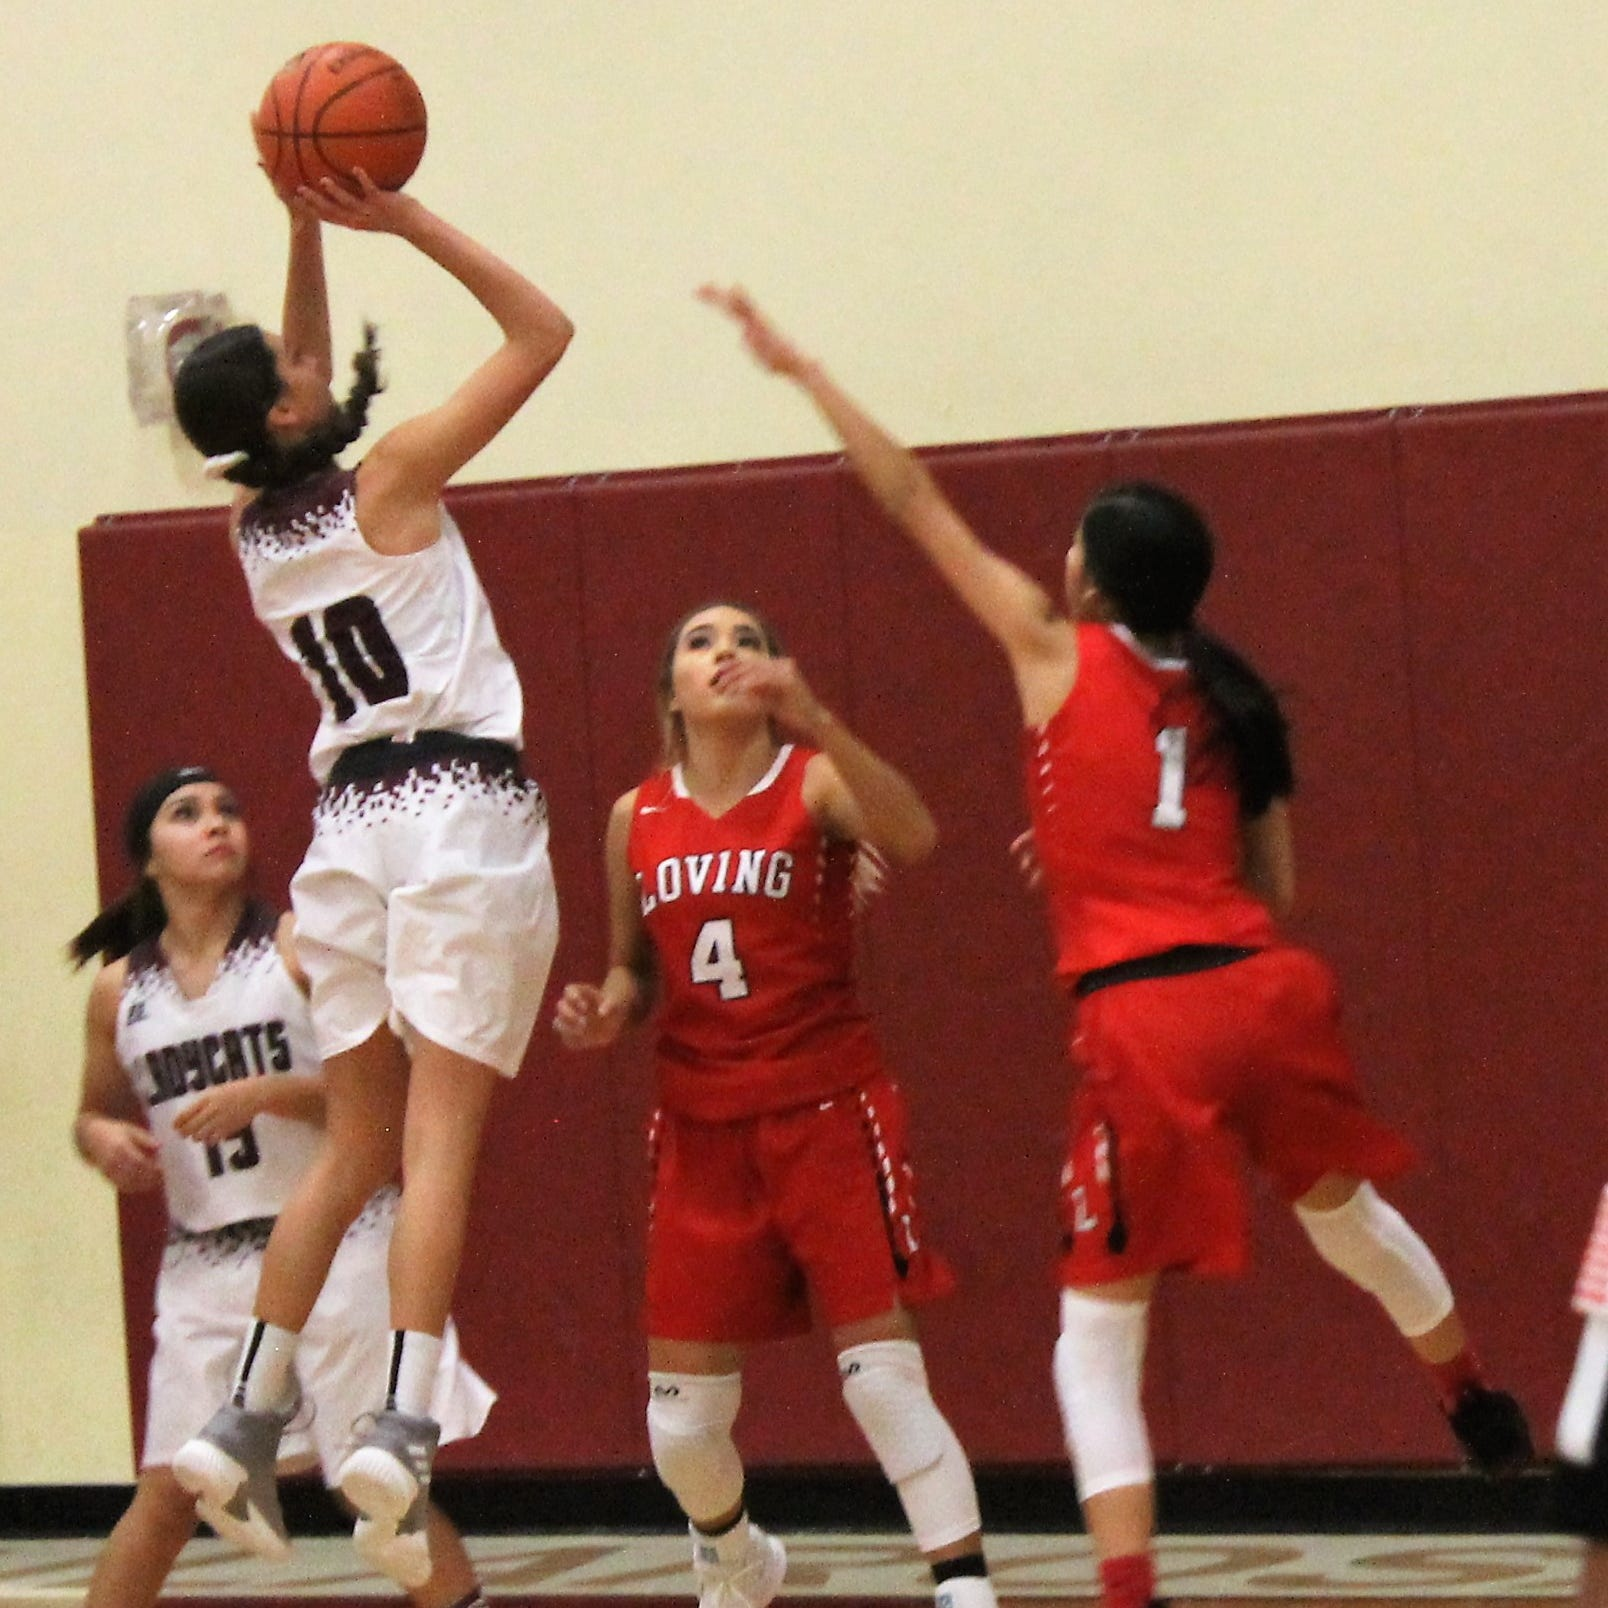 Tularosa Lady Wildcats have high hopes for season